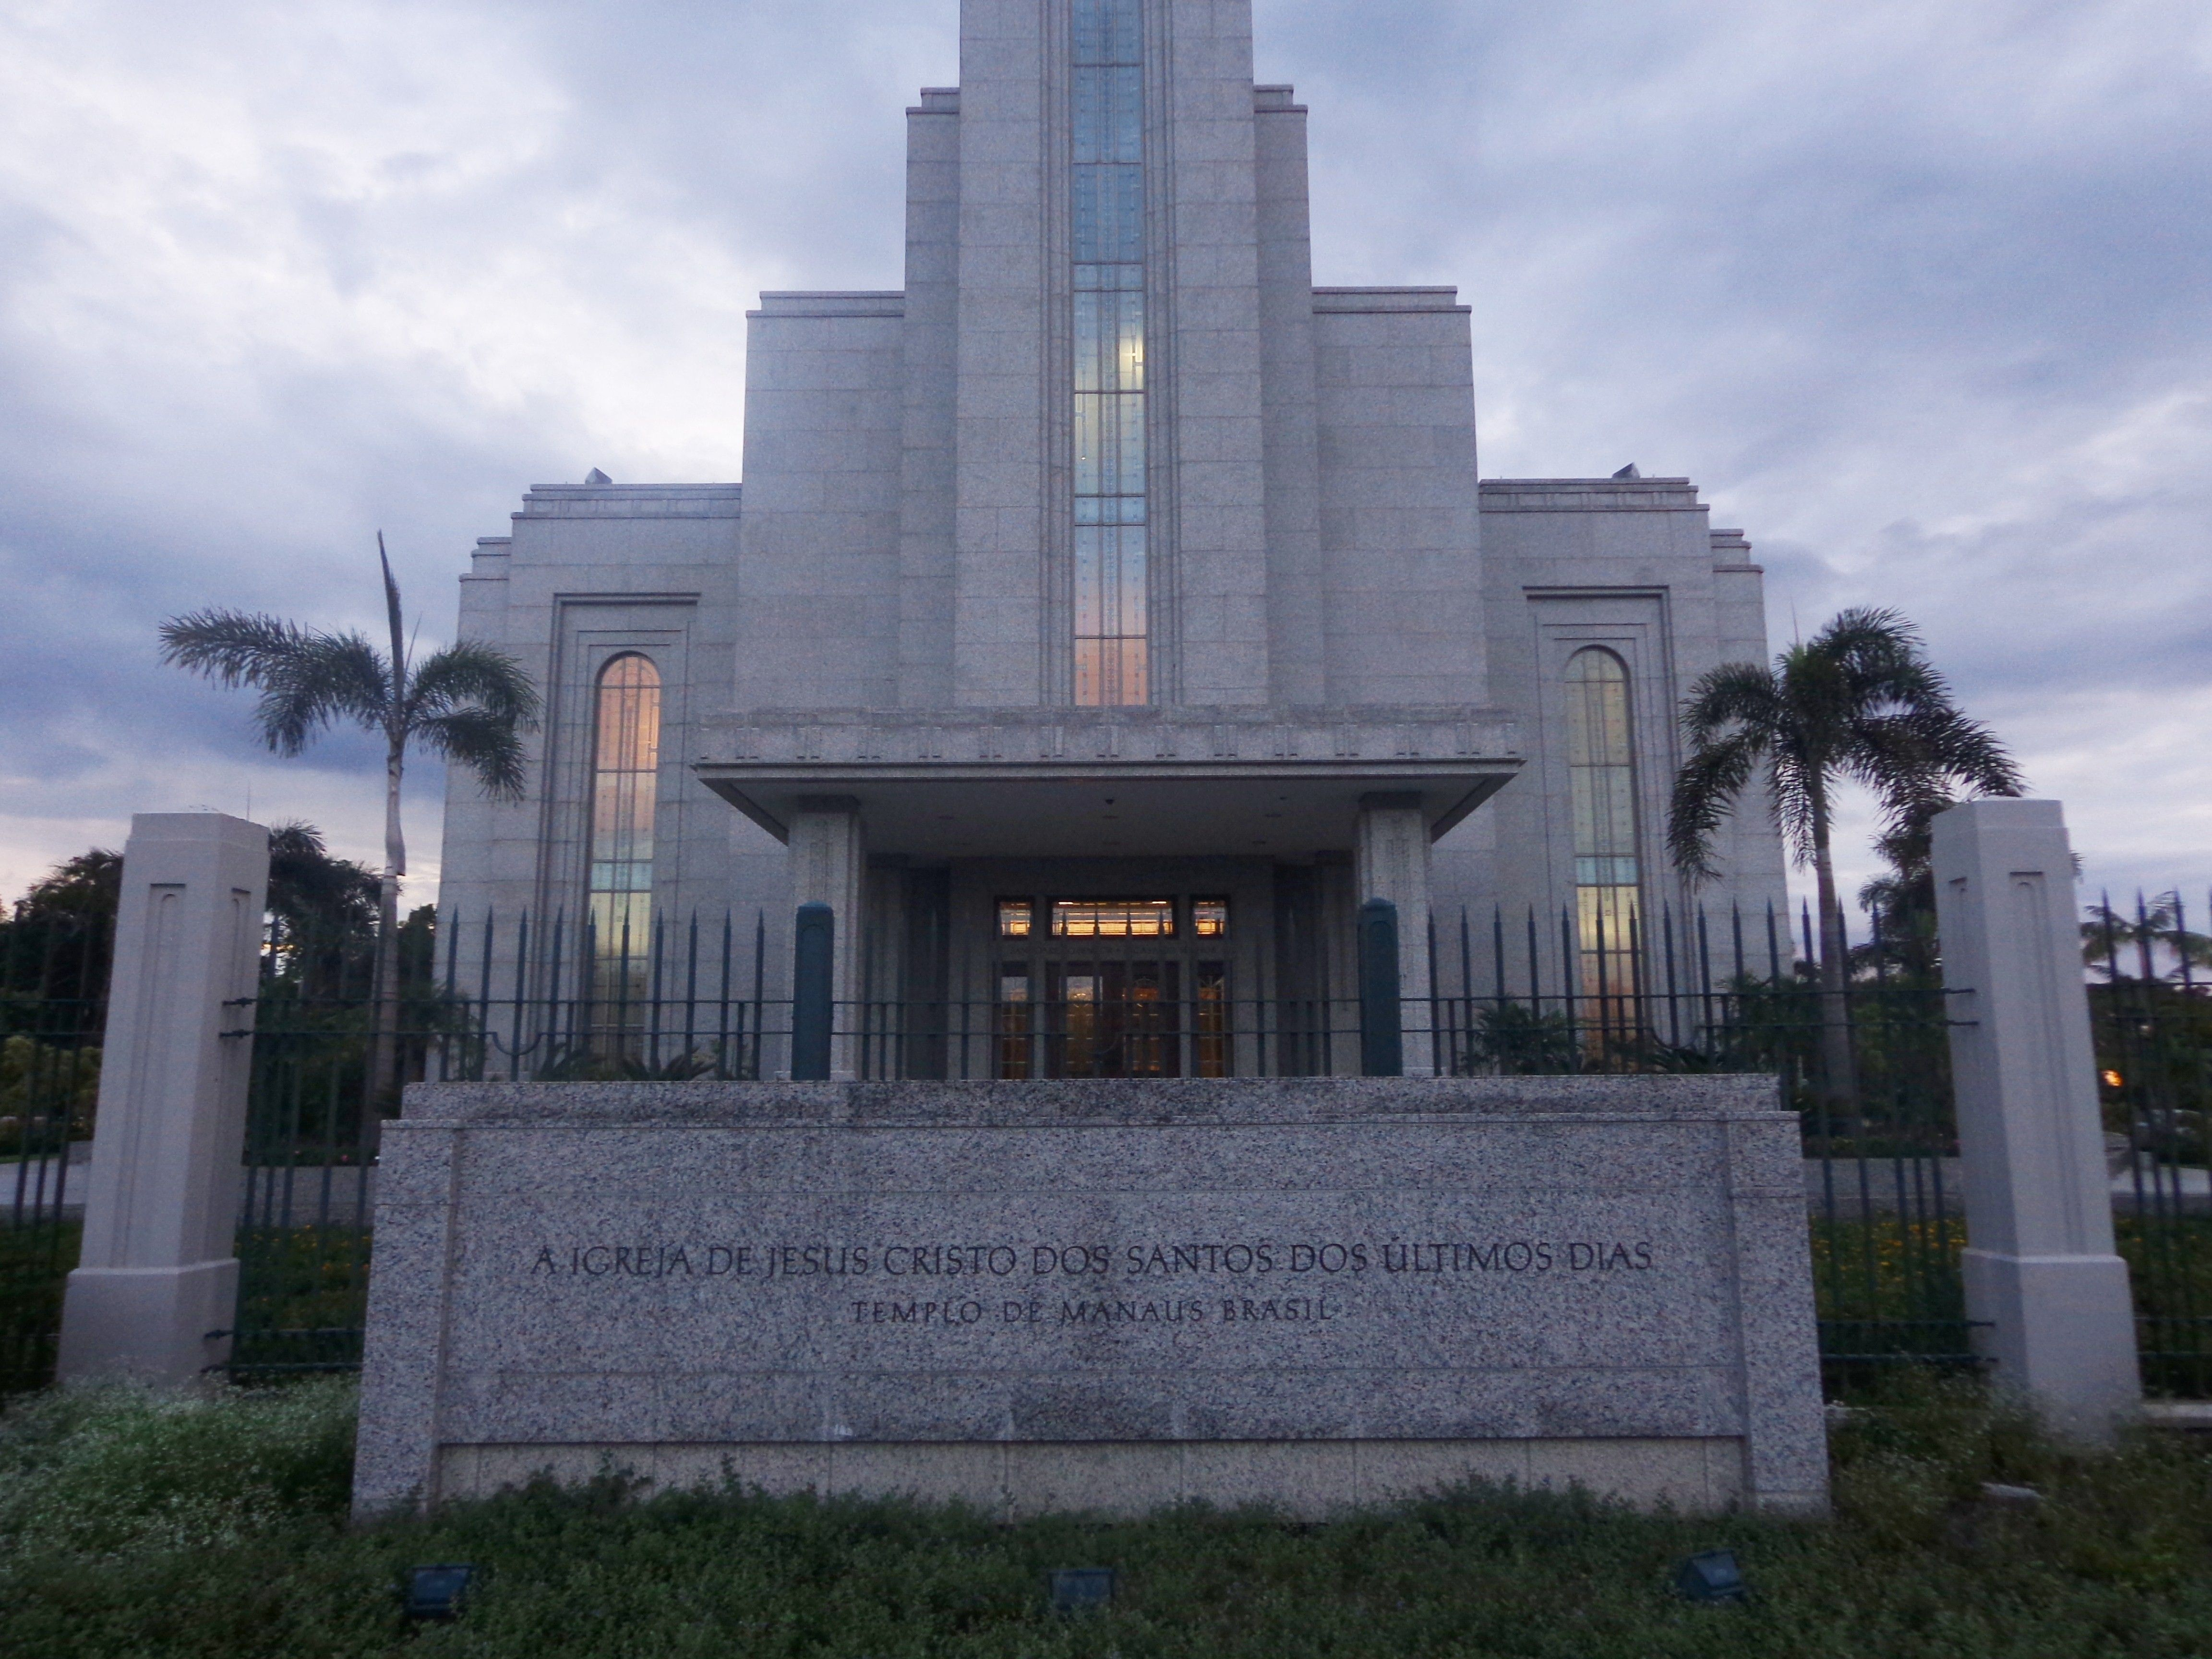 The Manaus Brazil Temple name sign, including the entrance and exterior of the temple.